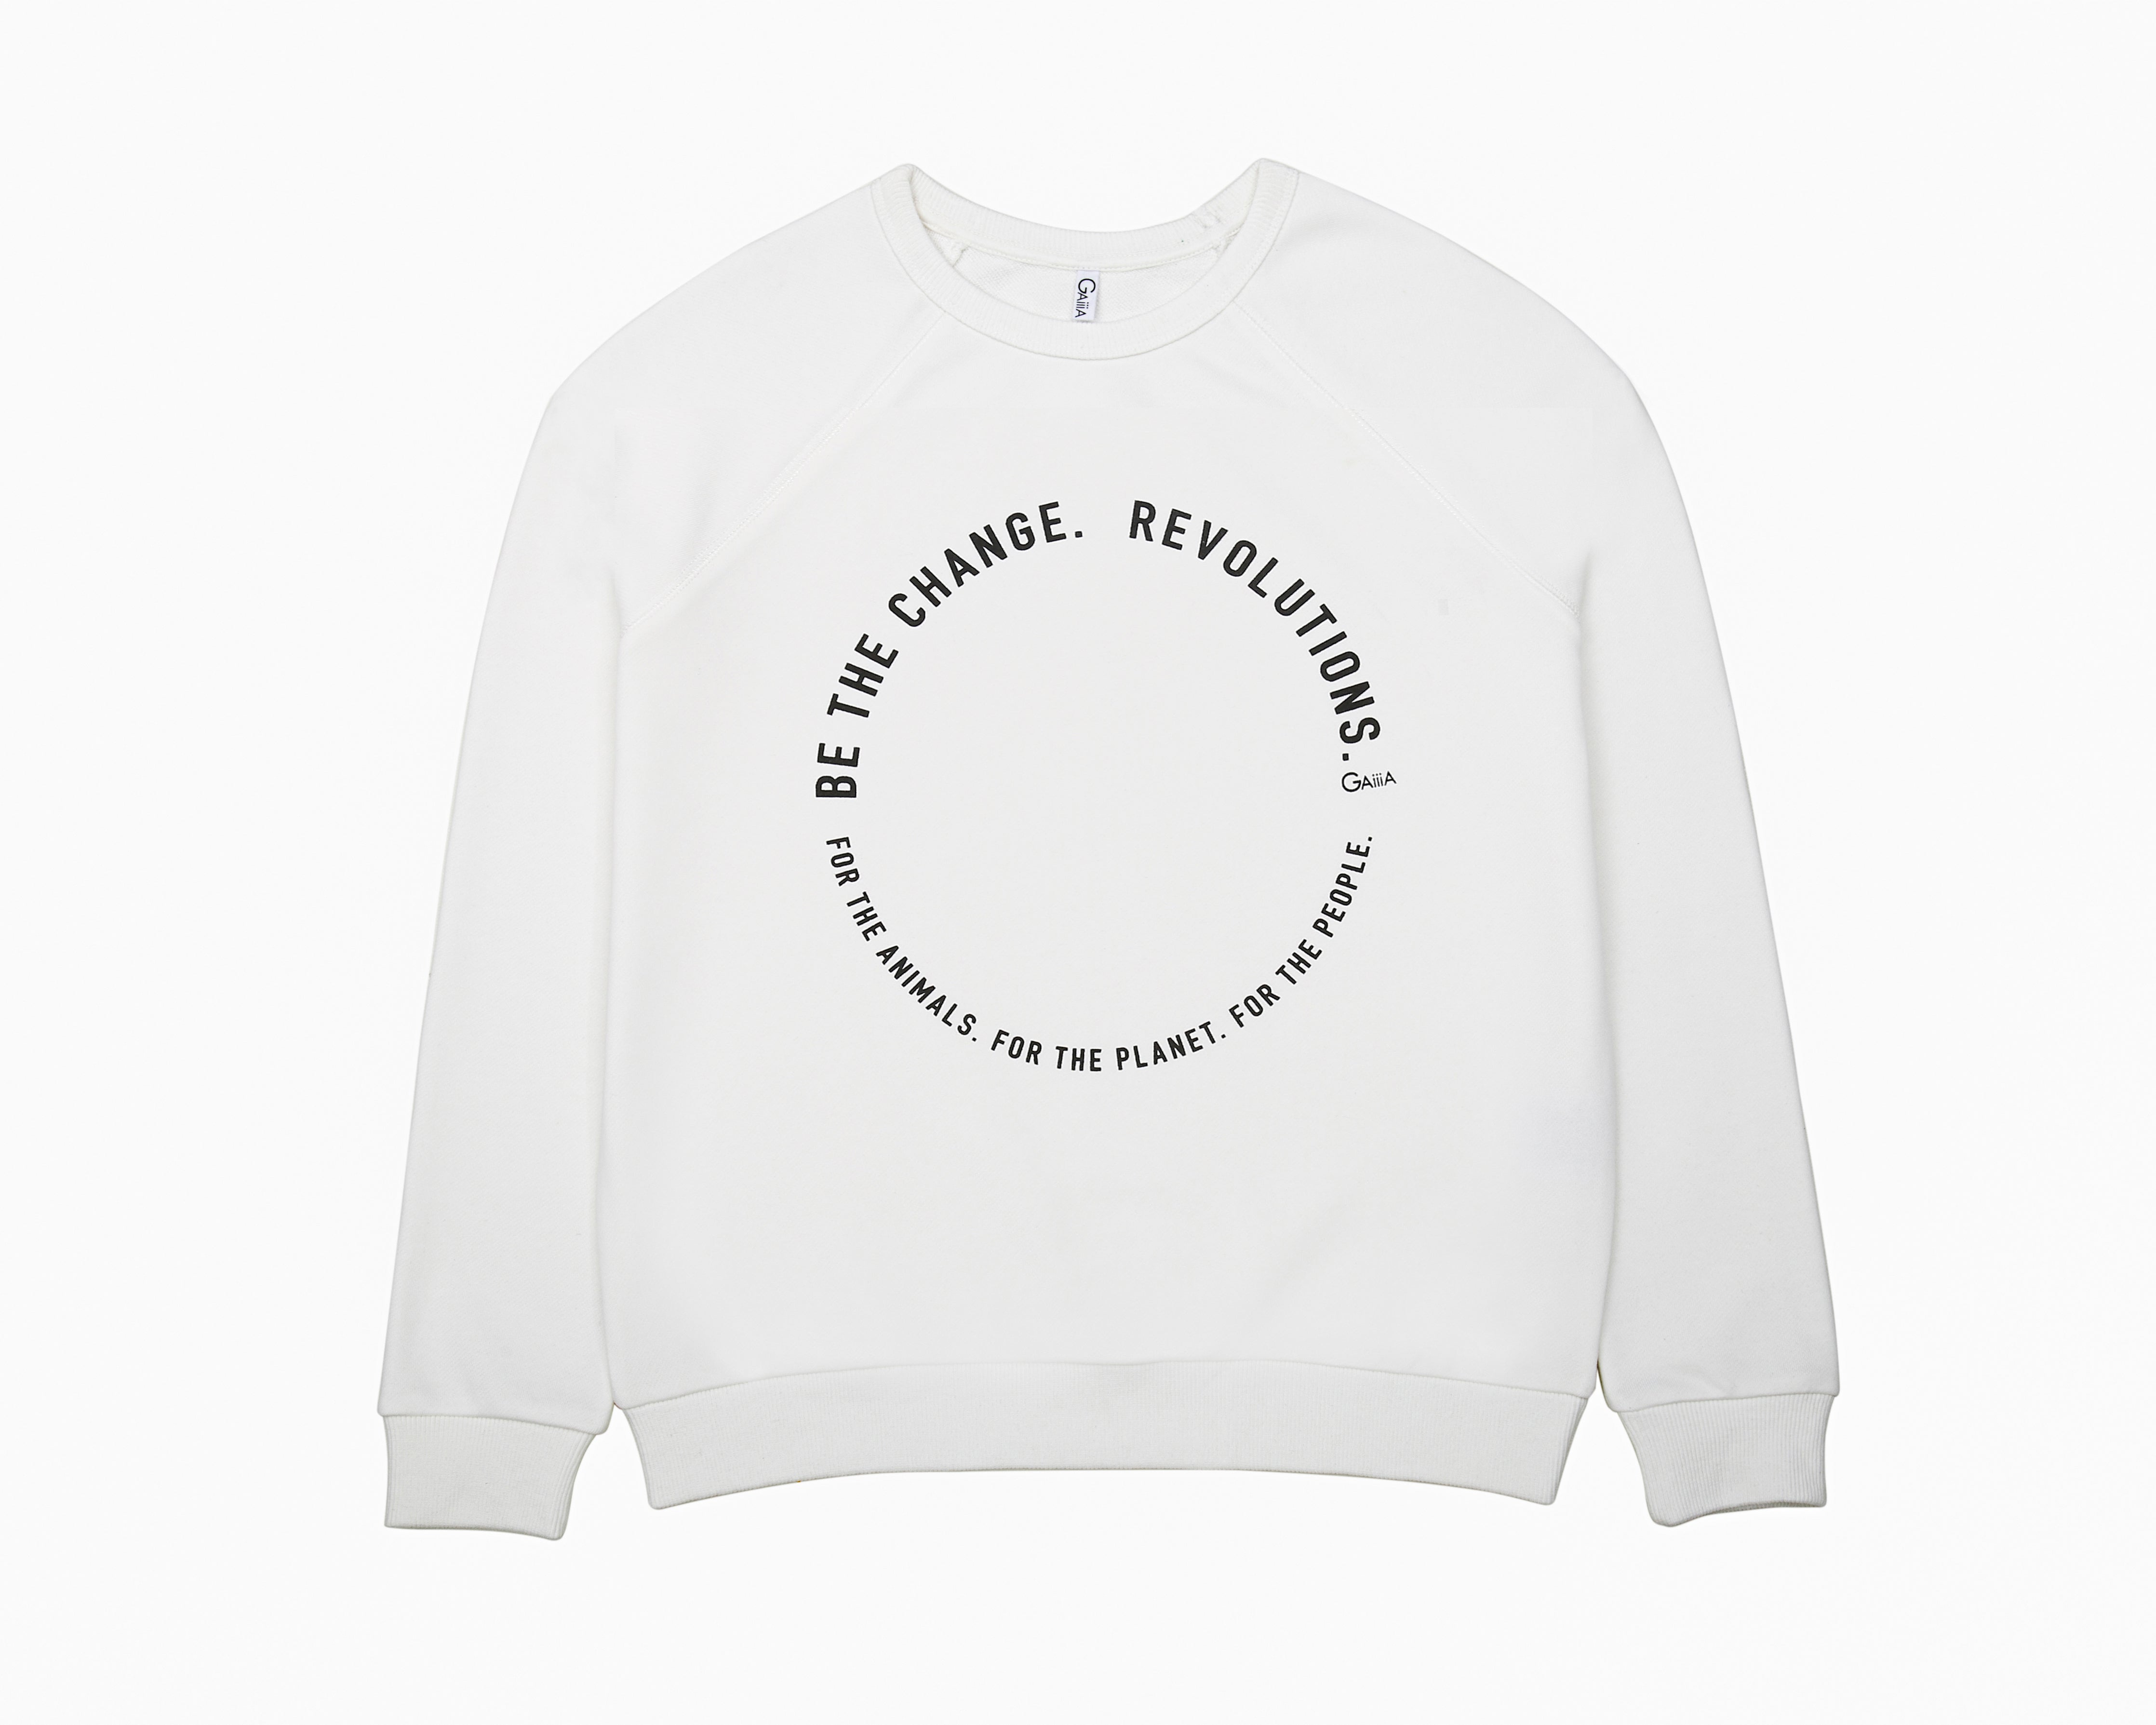 BE THE CHANGE REVOLUTIONS PULLOVER